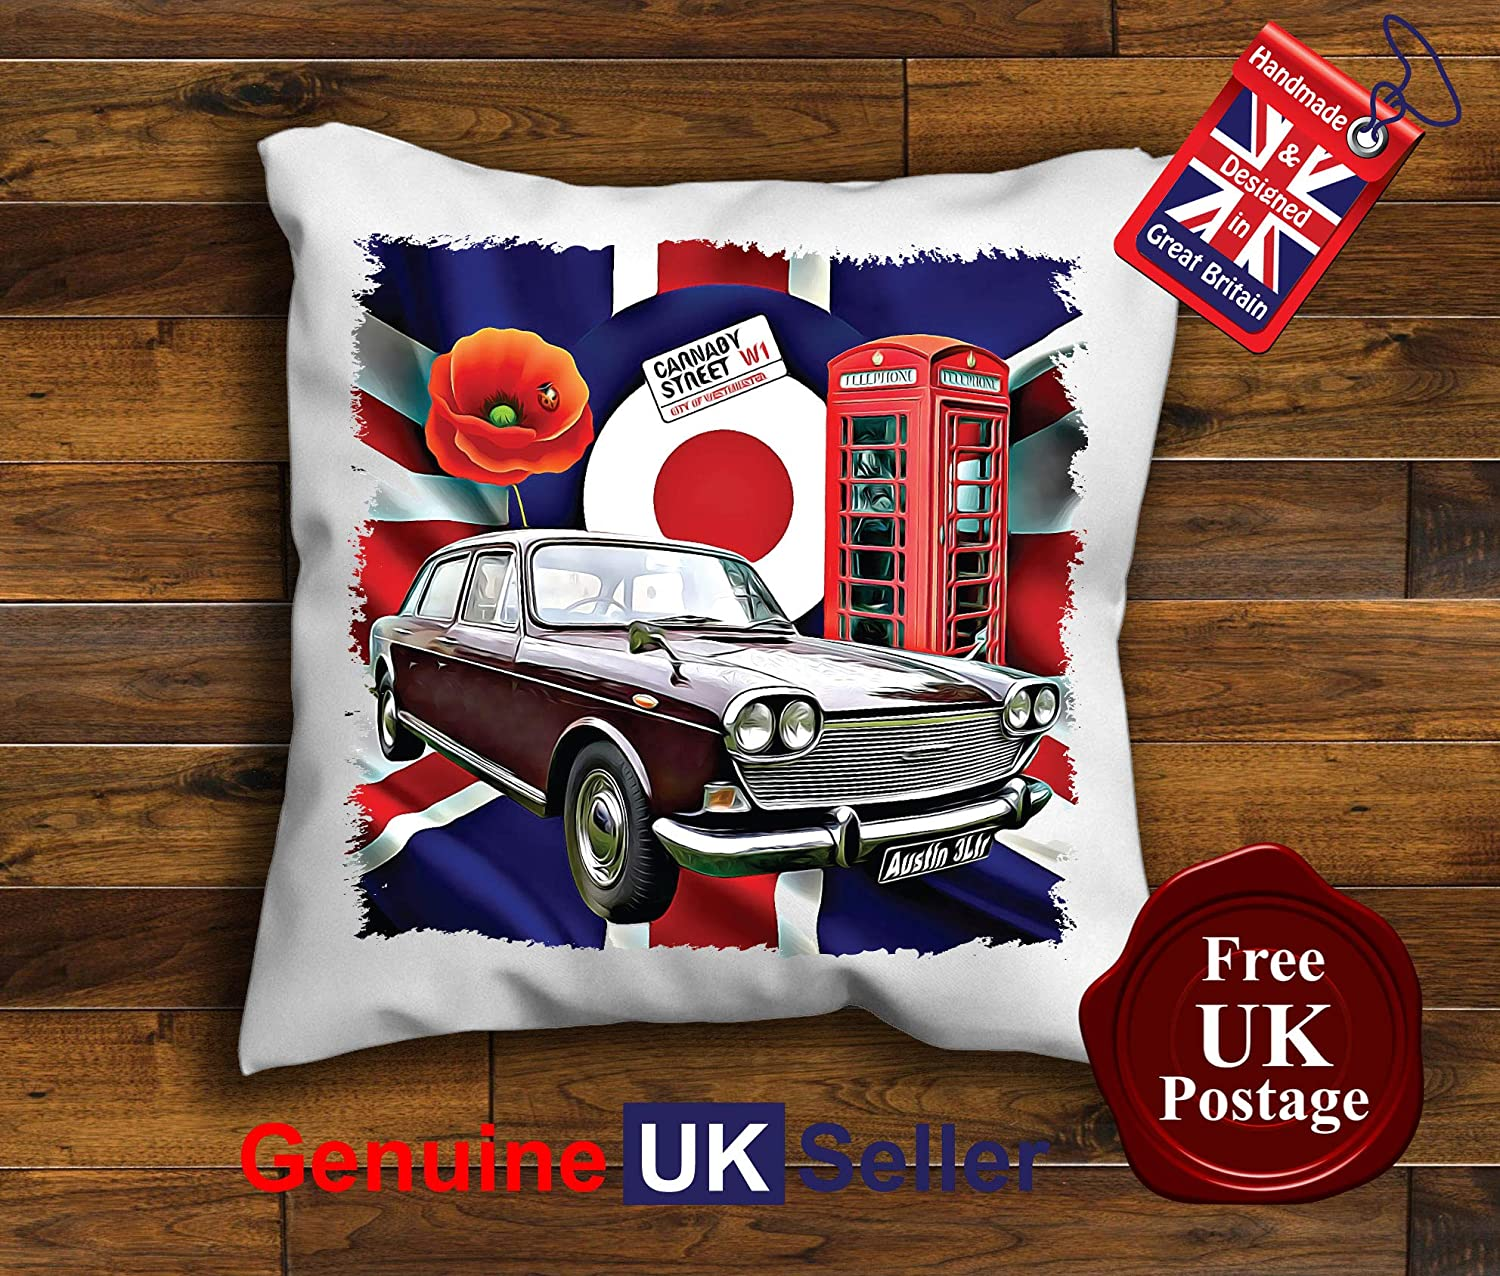 Austin 3 Litre Cushion Cover, Austin 3 Litre Cushion, Choice of sizes, Handmade 10 to 20 inch See Description